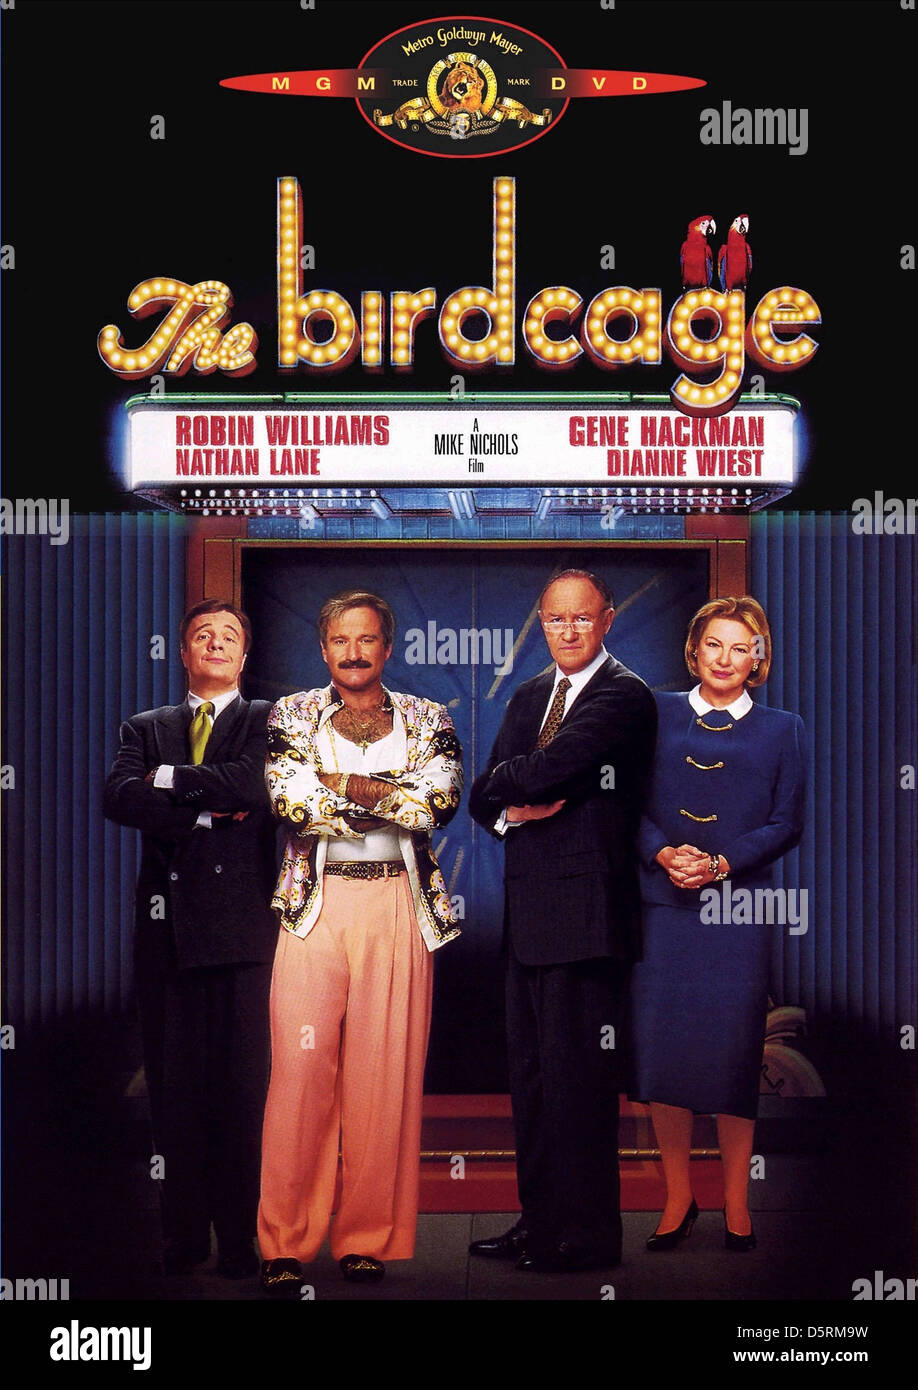 NATHAN LANE ROBIN WILLIAMS GENE HACKMAN & DIANNE WIEST THE ...